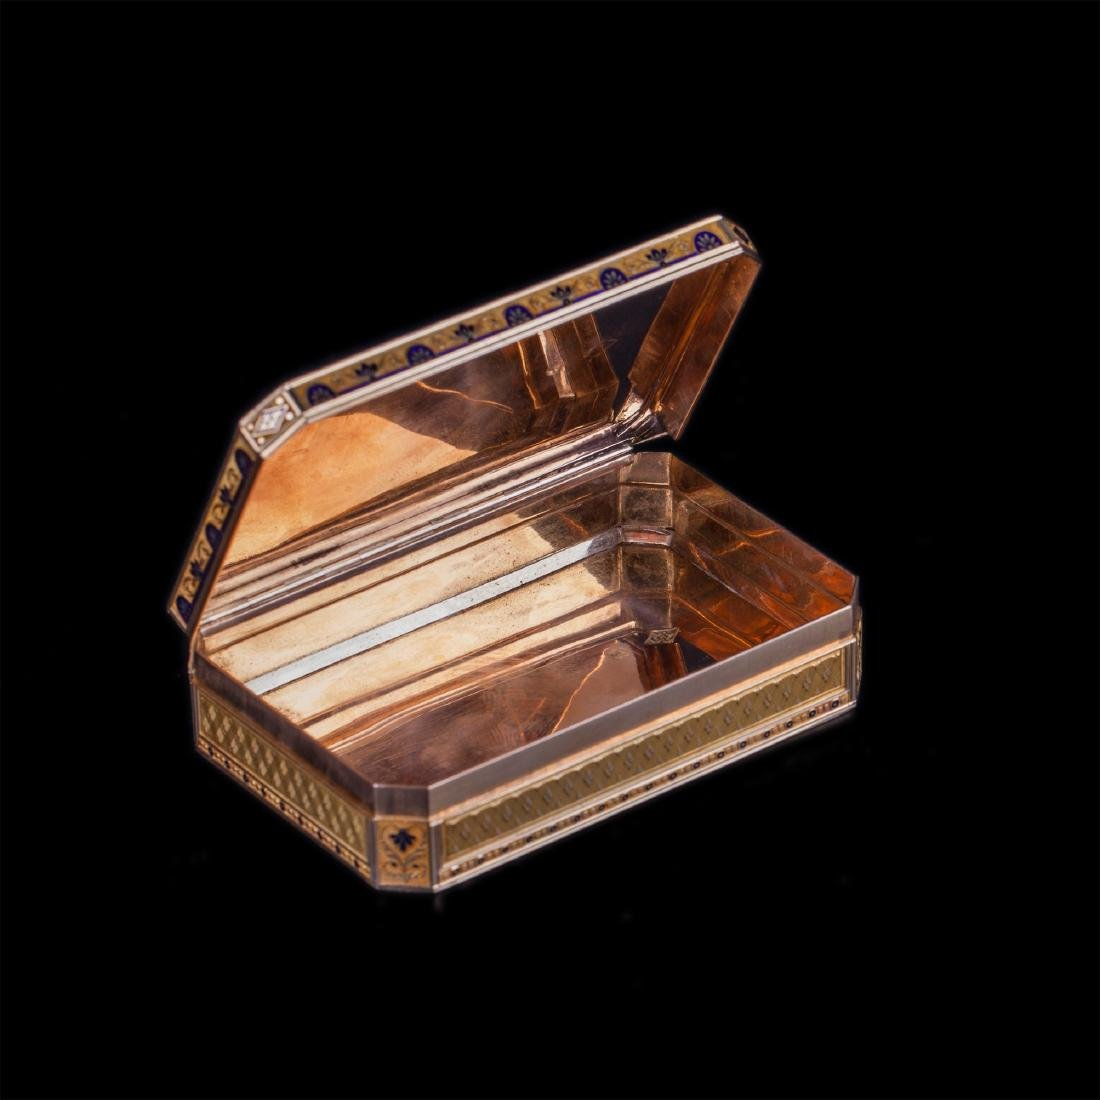 18th century Swiss gold snuff box with harp - 4